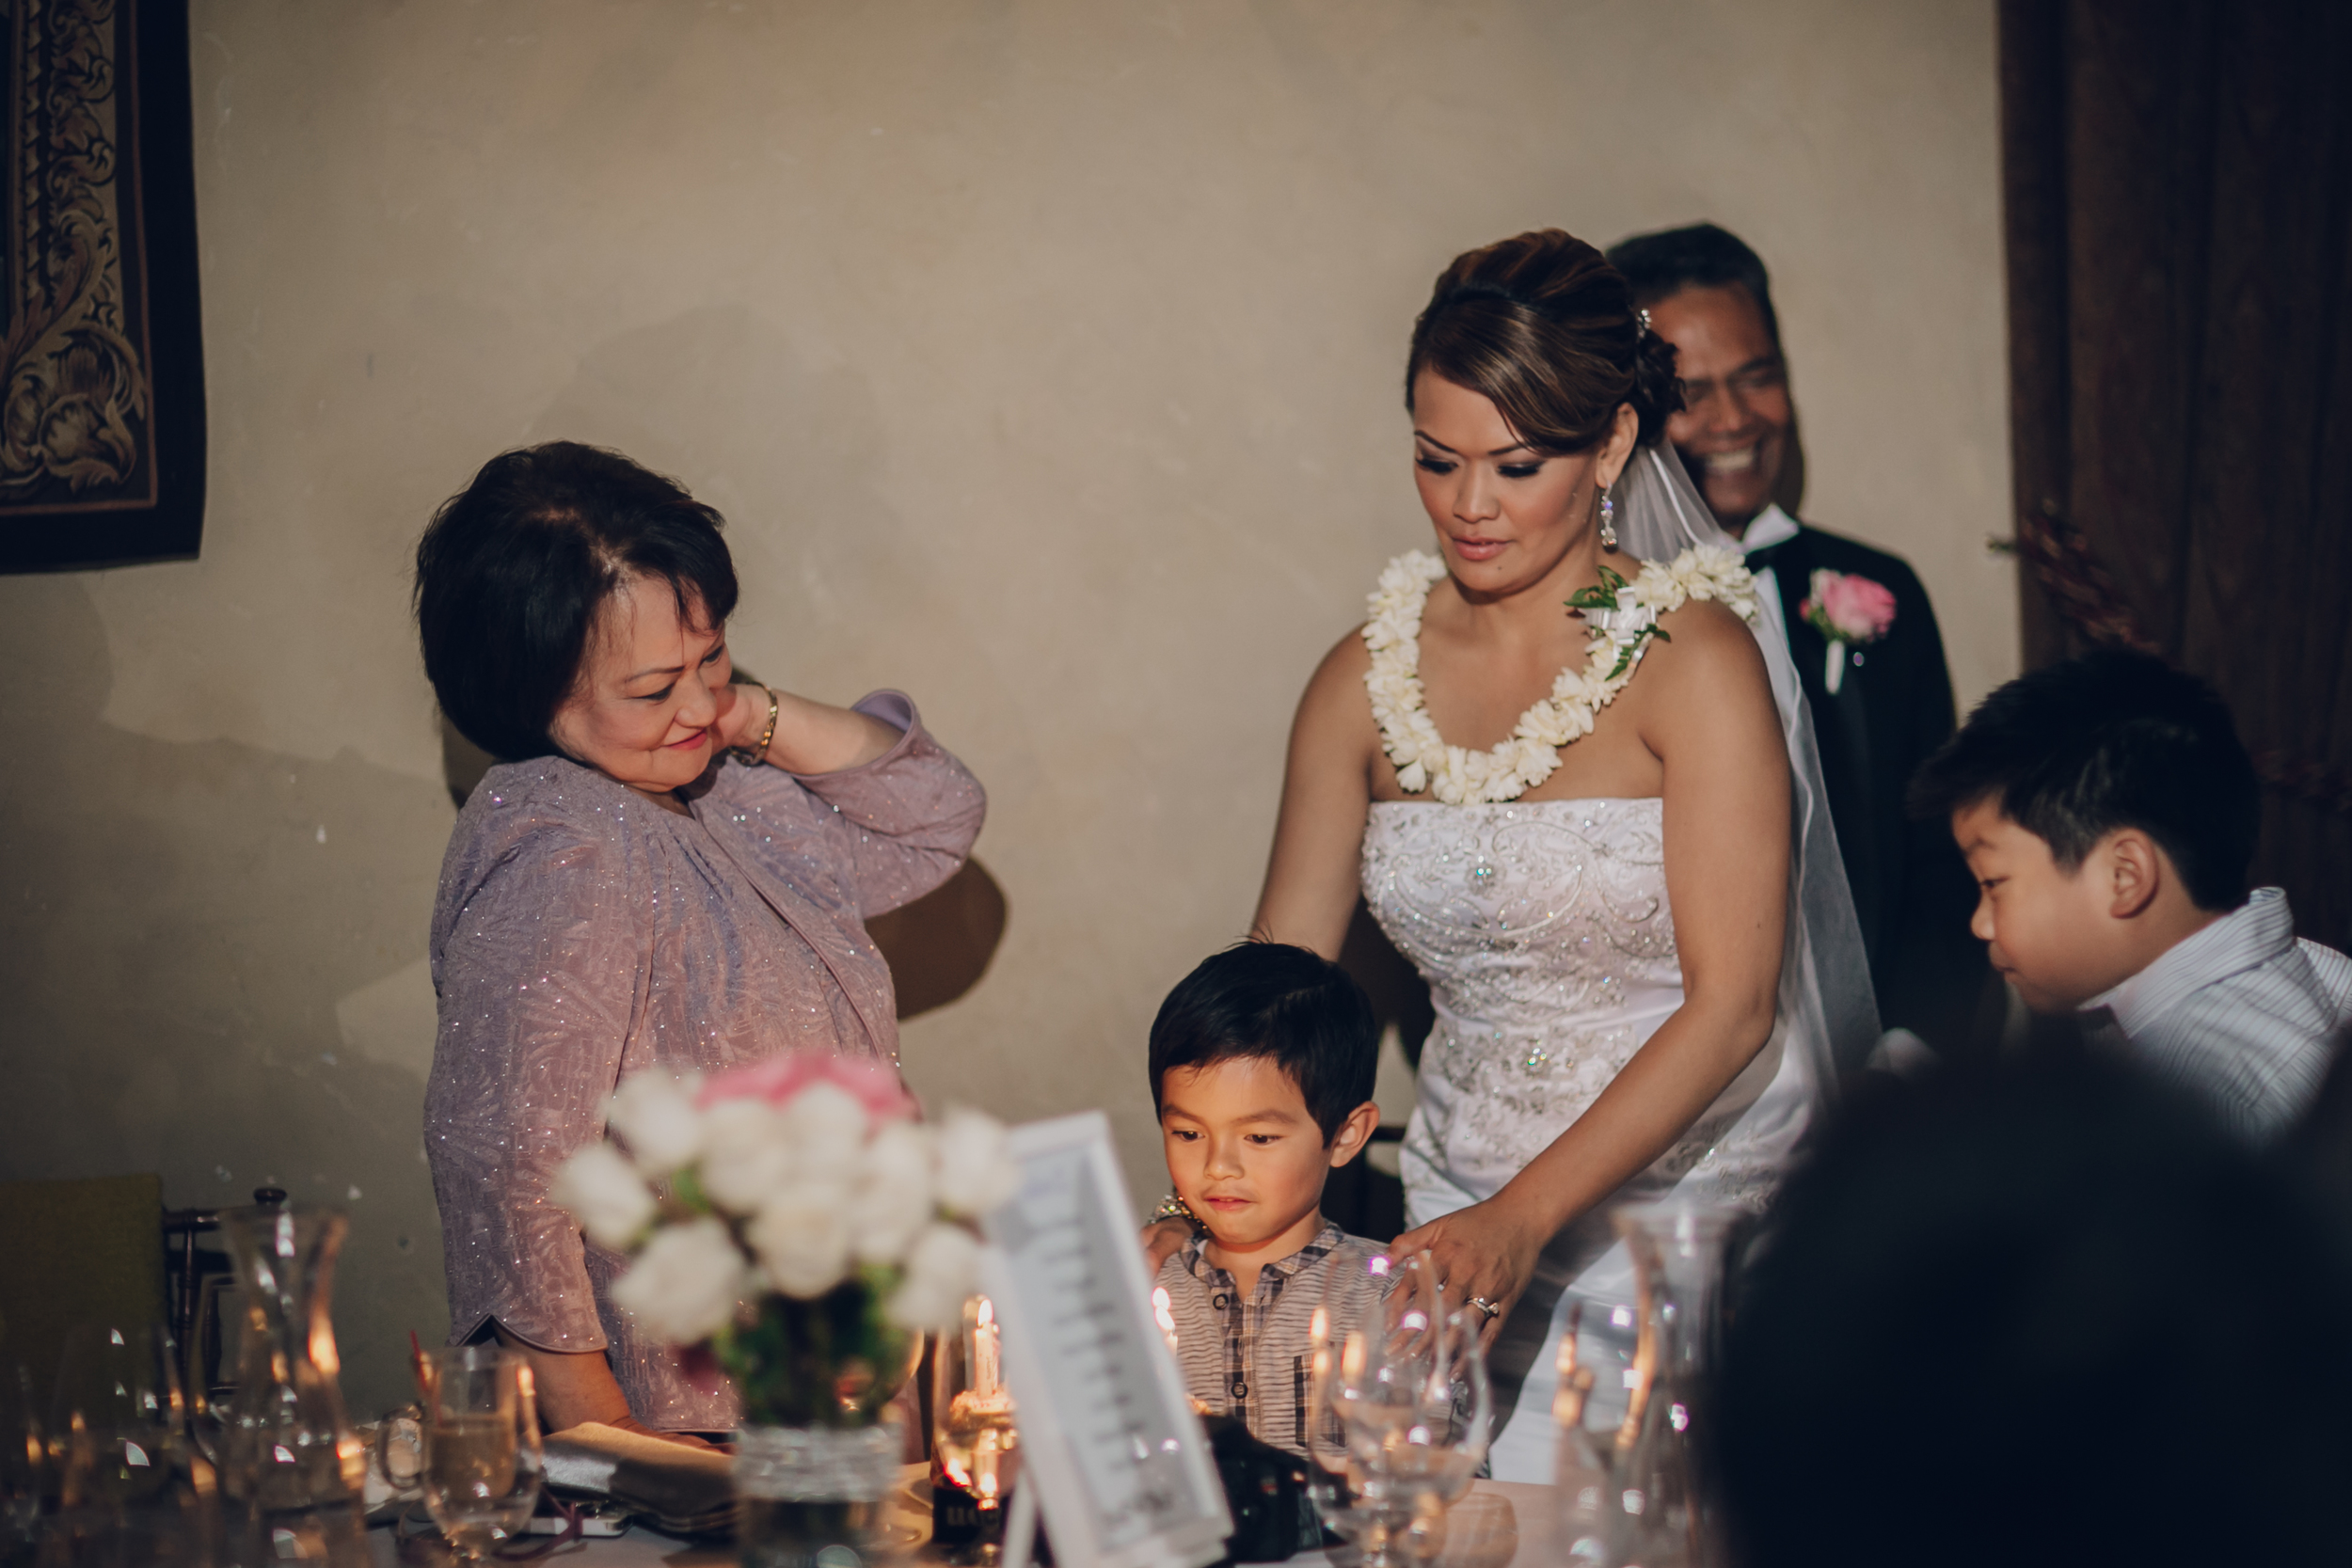 Shiela + Lester's Wedding 9-30-15 375.jpg